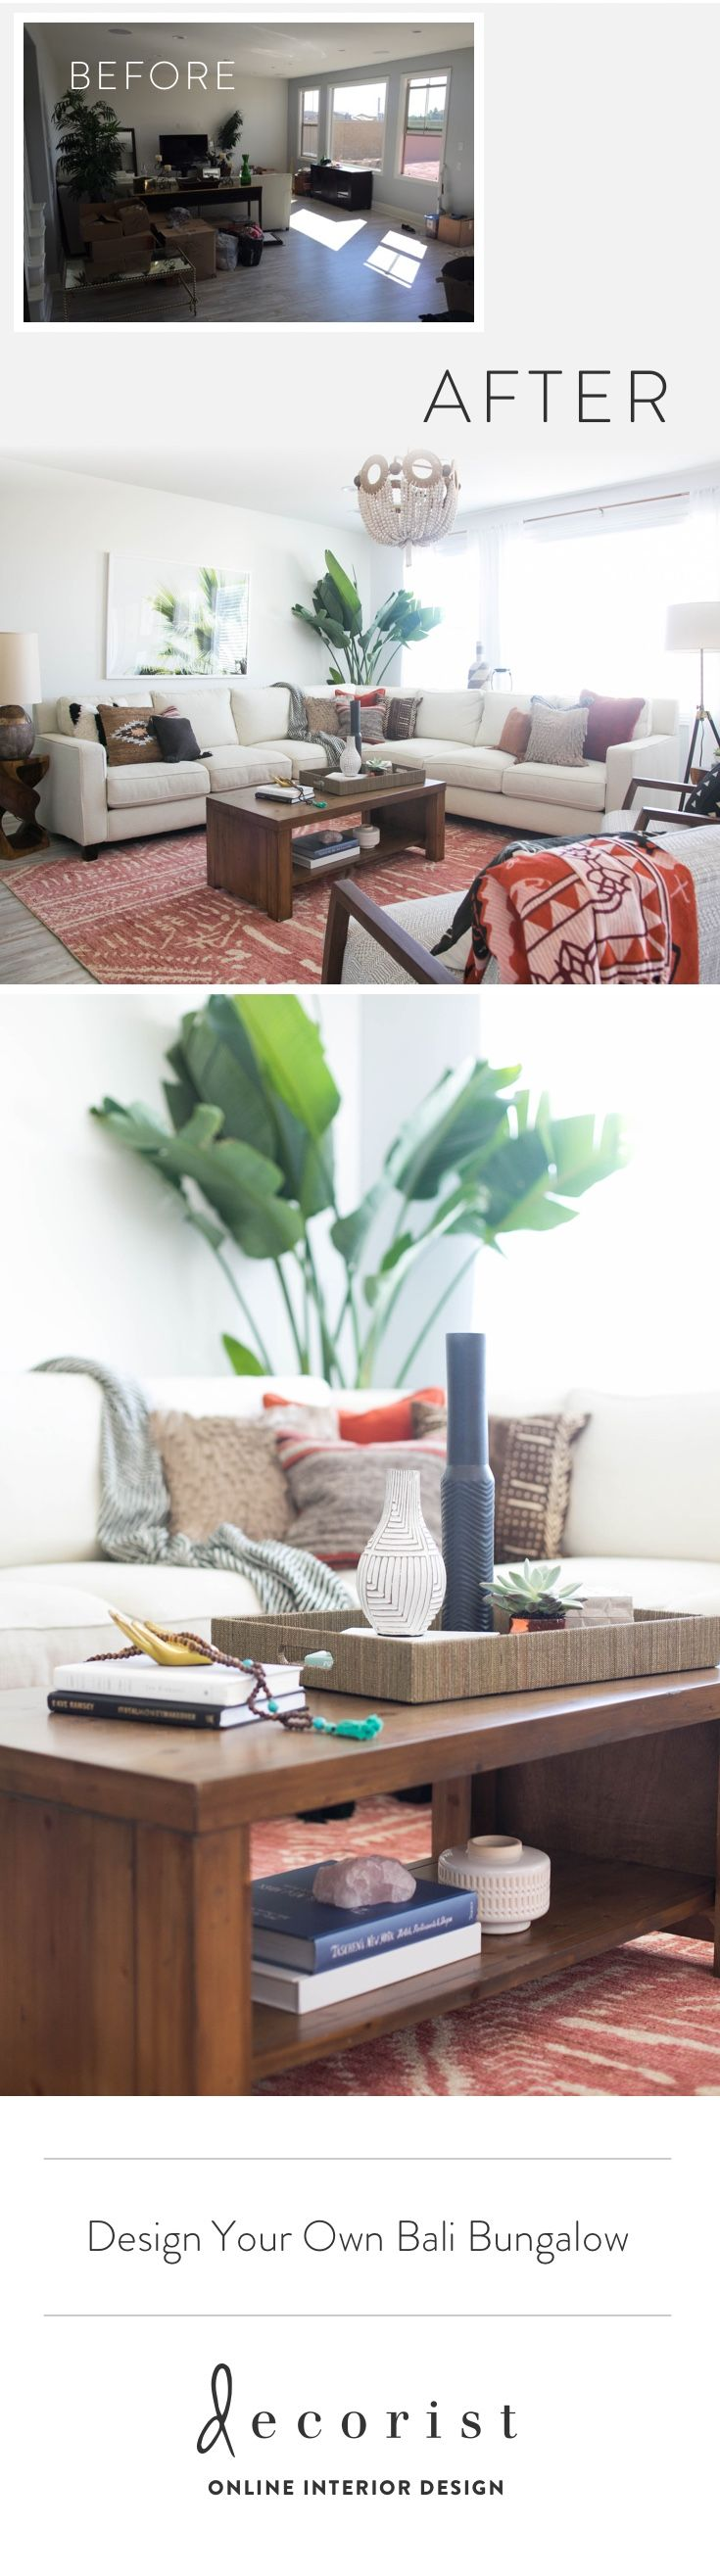 Want your own Bali bungalow living room and dining room? See this amazing Before/After and how easy and affordable it is to design with Decorist.